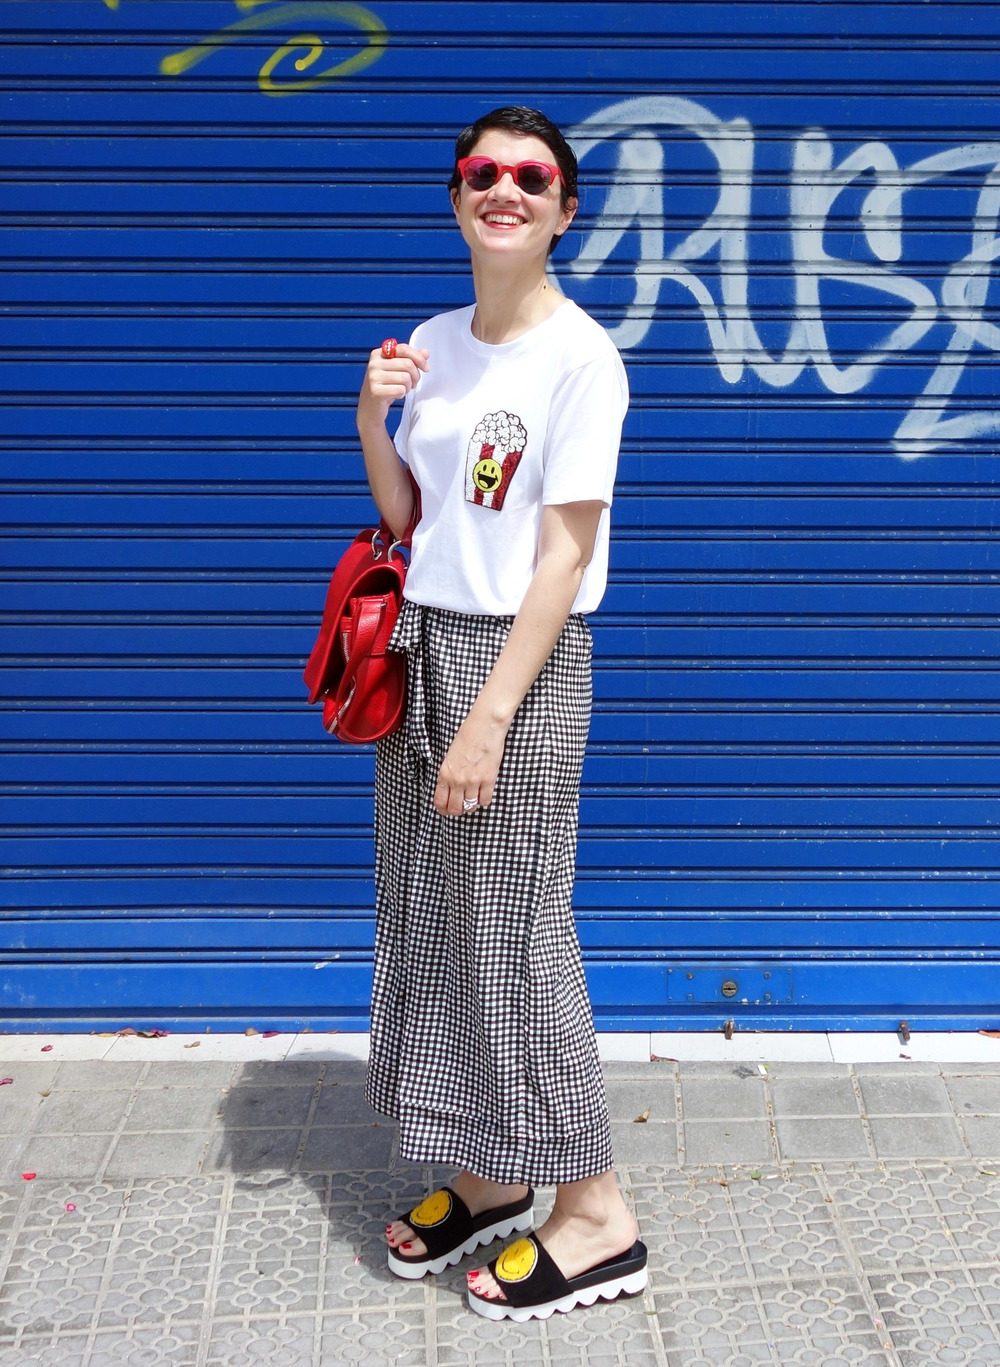 Back_To_Trendy_Smiley_Sandals_Red_Purse_Checkered_Pants_4.JPG